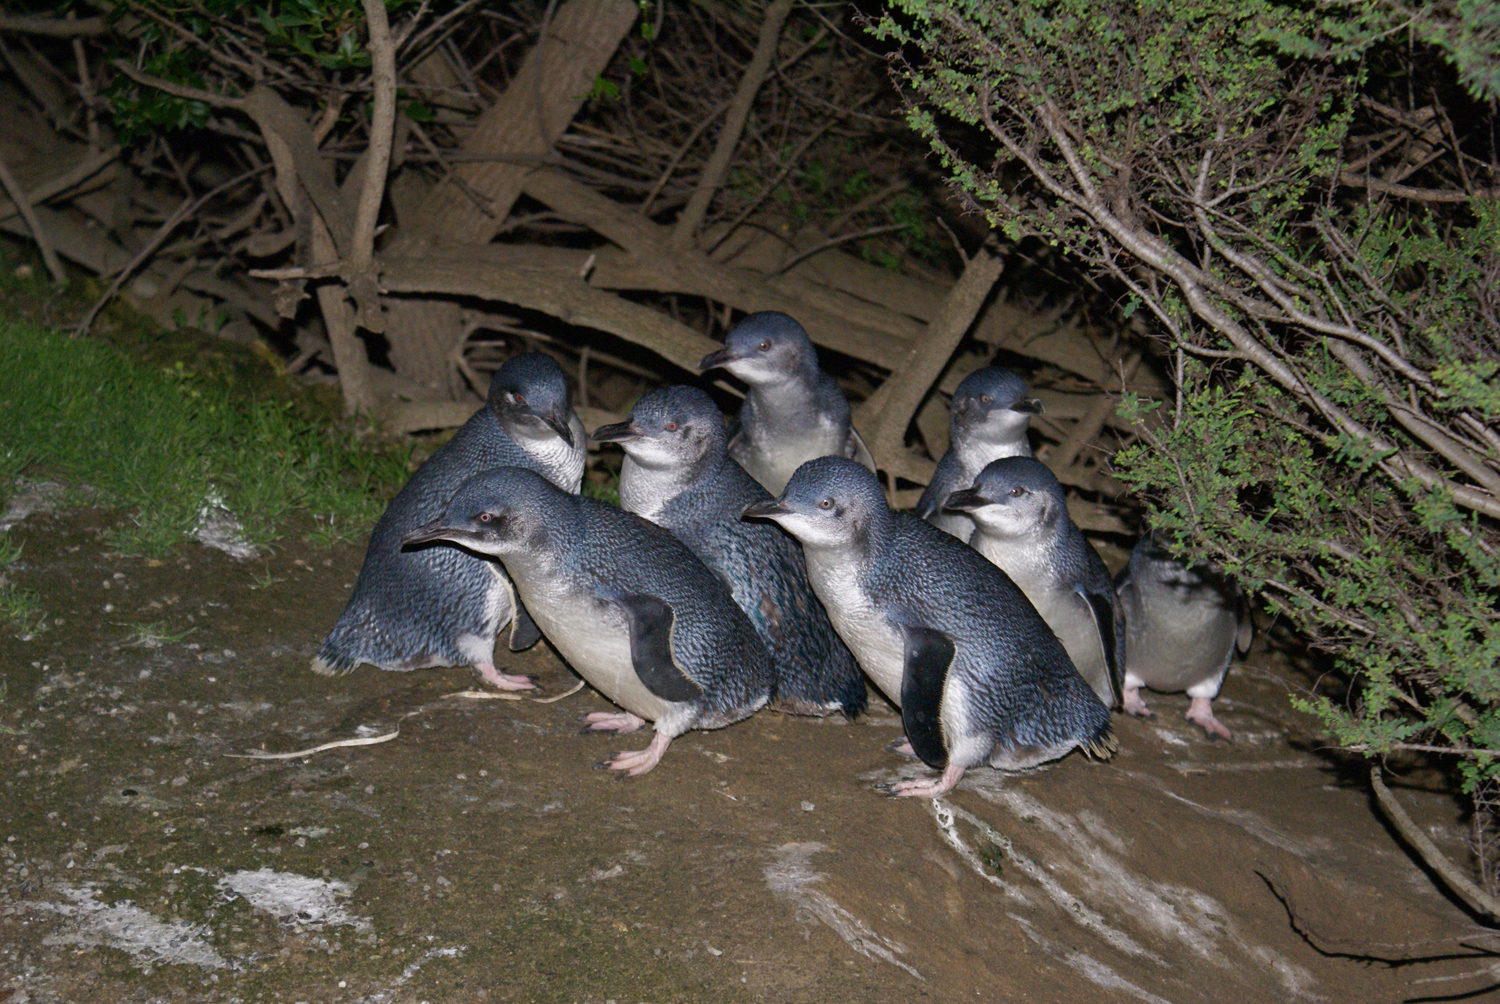 Fairy penguins at the Kangaroo Island Penguin Center in Kingscote, taken with a flash at night